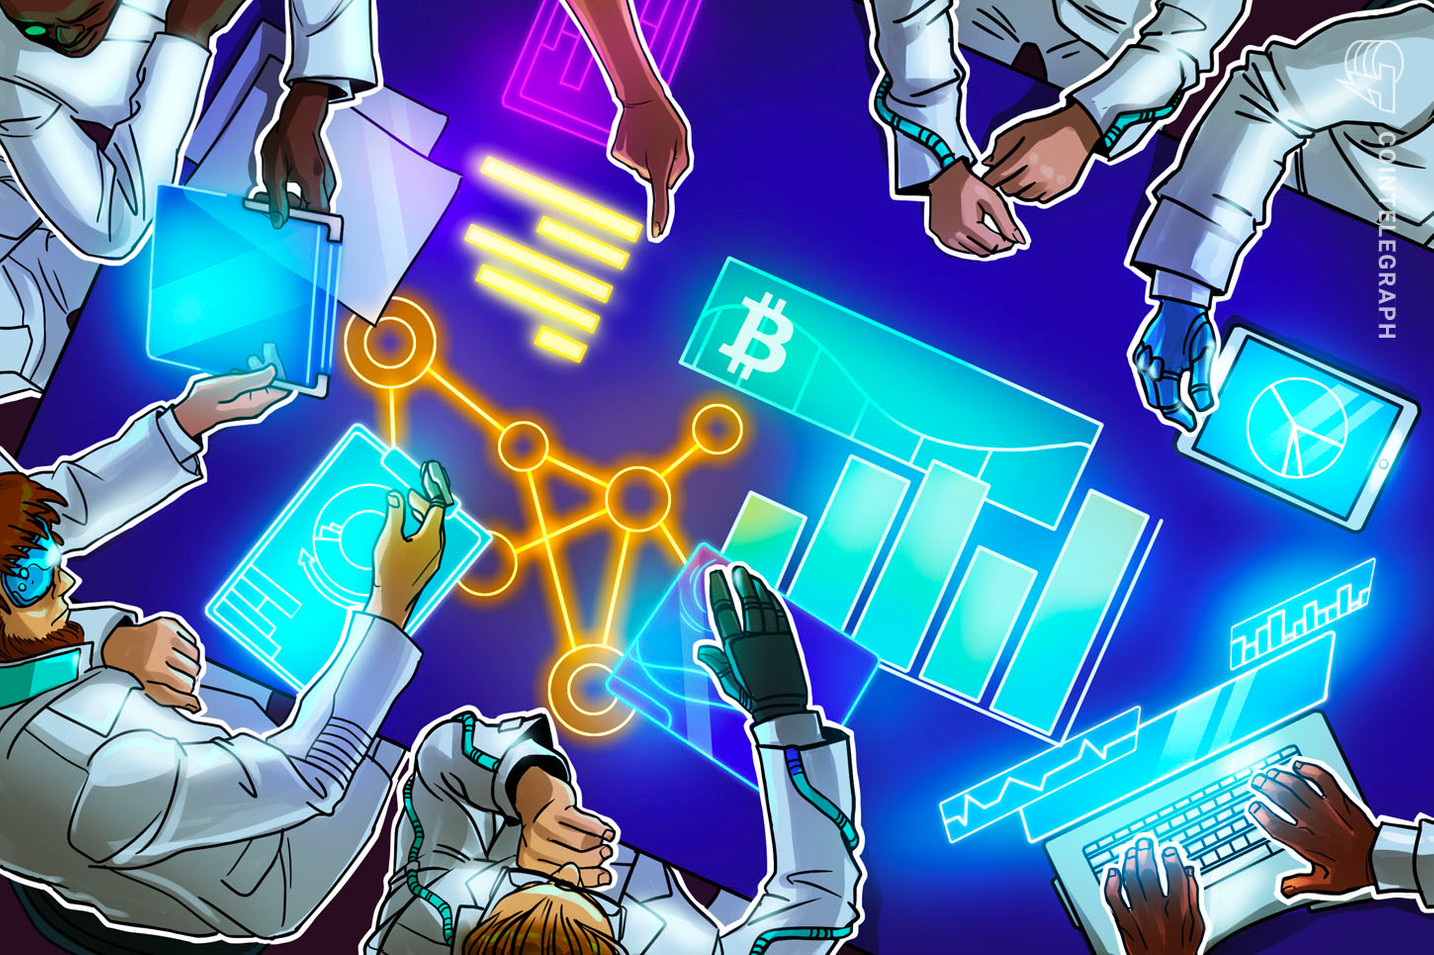 This Bitcoin Halving Is Different, Crypto Valley Experts Agree